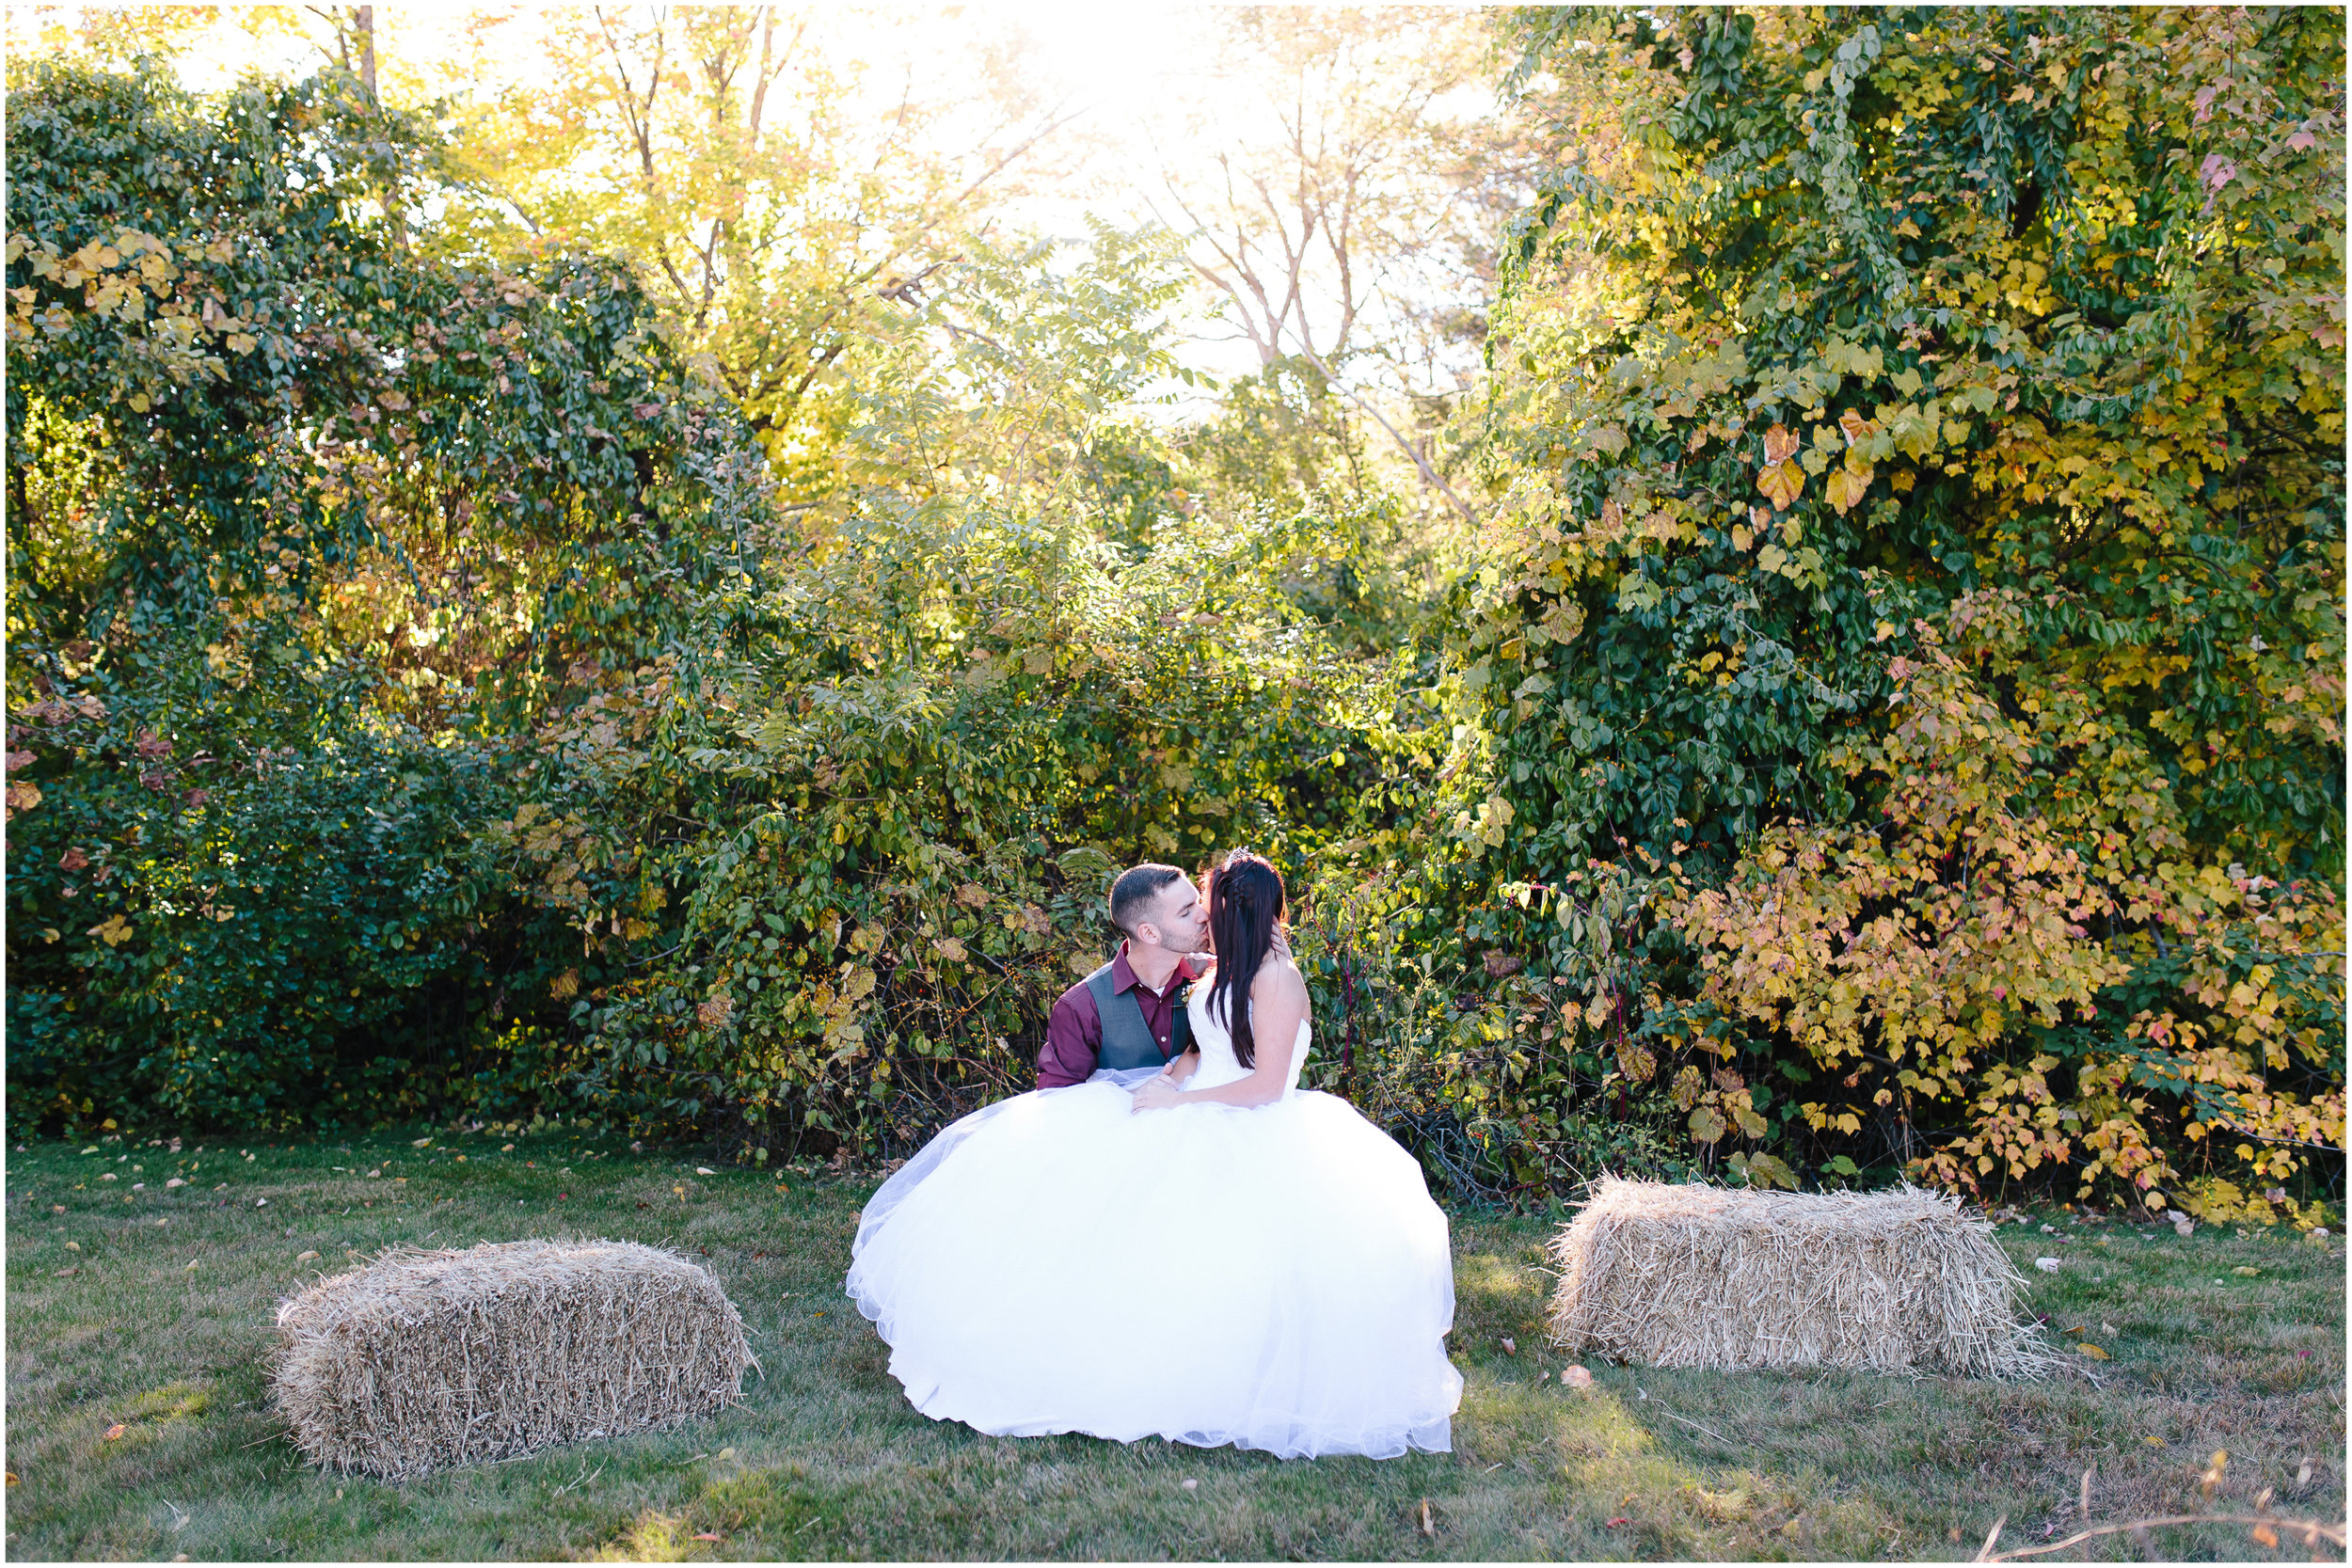 Ashleigh Laureen Photography Journalistic Fall Wedding in Hooksett, New Hampshire, Bride and Groom